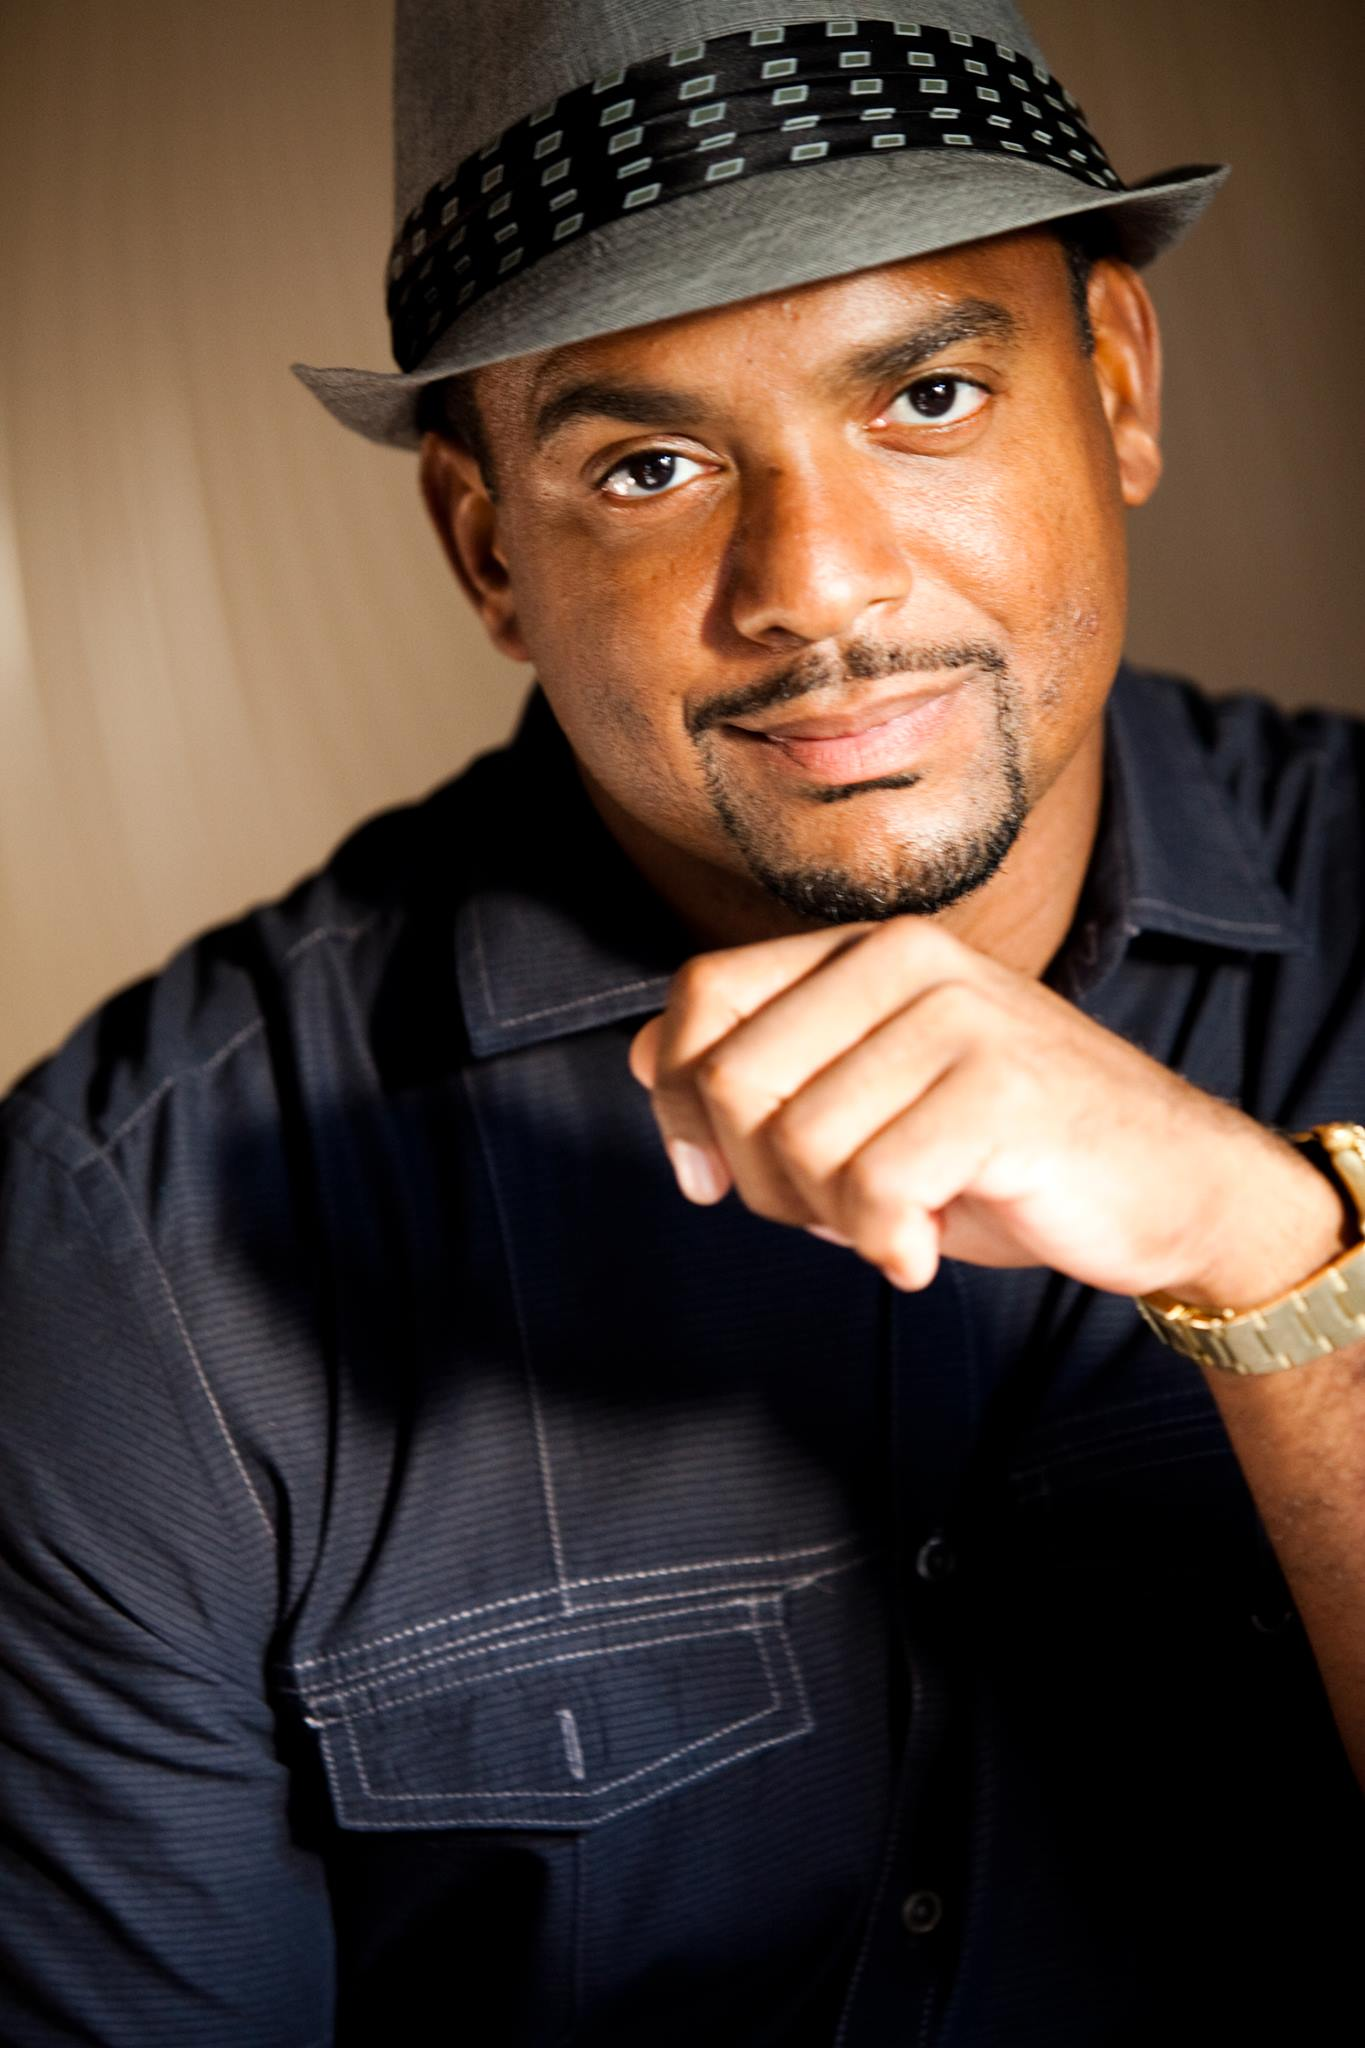 alfonso ribeiroalfonso ribeiro rap, alfonso ribeiro michael jackson pepsi, alfonso ribeiro height, alfonso ribeiro instagram, alfonso ribeiro, alfonso ribeiro dancing with the stars, alfonso ribeiro net worth, alfonso ribeiro wife, alfonso ribeiro dead, alfonso ribeiro dance, alfonso ribeiro twitter, alfonso ribeiro wiki, alfonso ribeiro will smith, alfonso ribeiro imdb, alfonso ribeiro doing the carlton, alfonso ribeiro youtube, alfonso ribeiro and witney carson, alfonso ribeiro fresh prince dance, alfonso ribeiro daughter, alfonso ribeiro pepsi